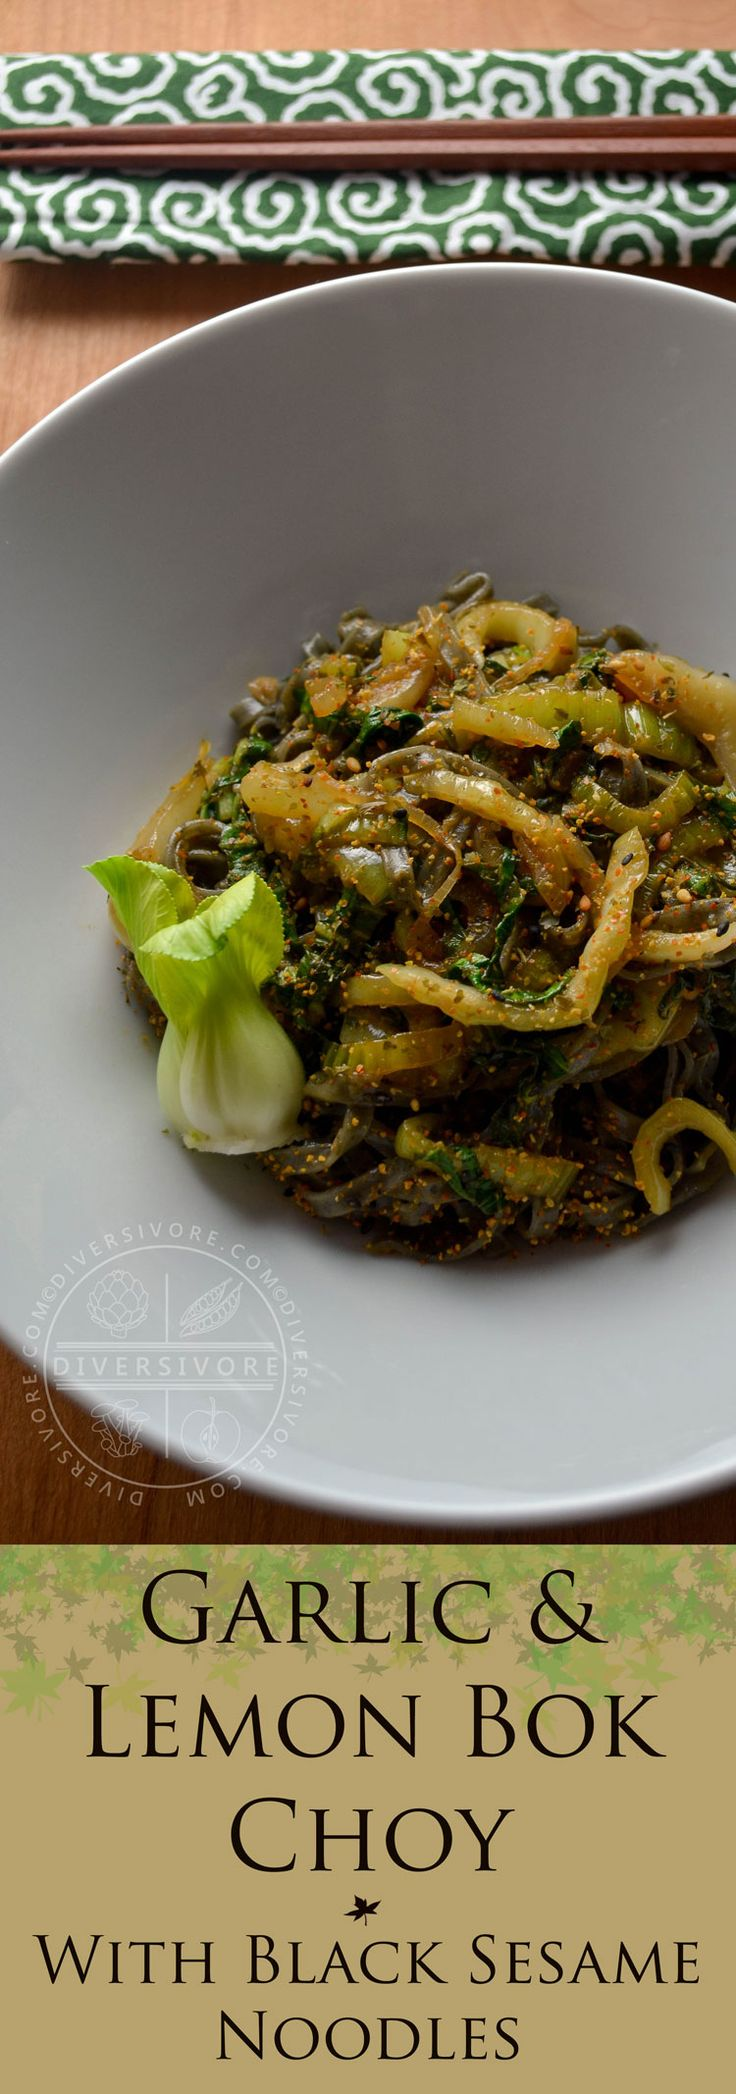 ... bok choy hot and sour peanutty noodles with bok choy recipe key